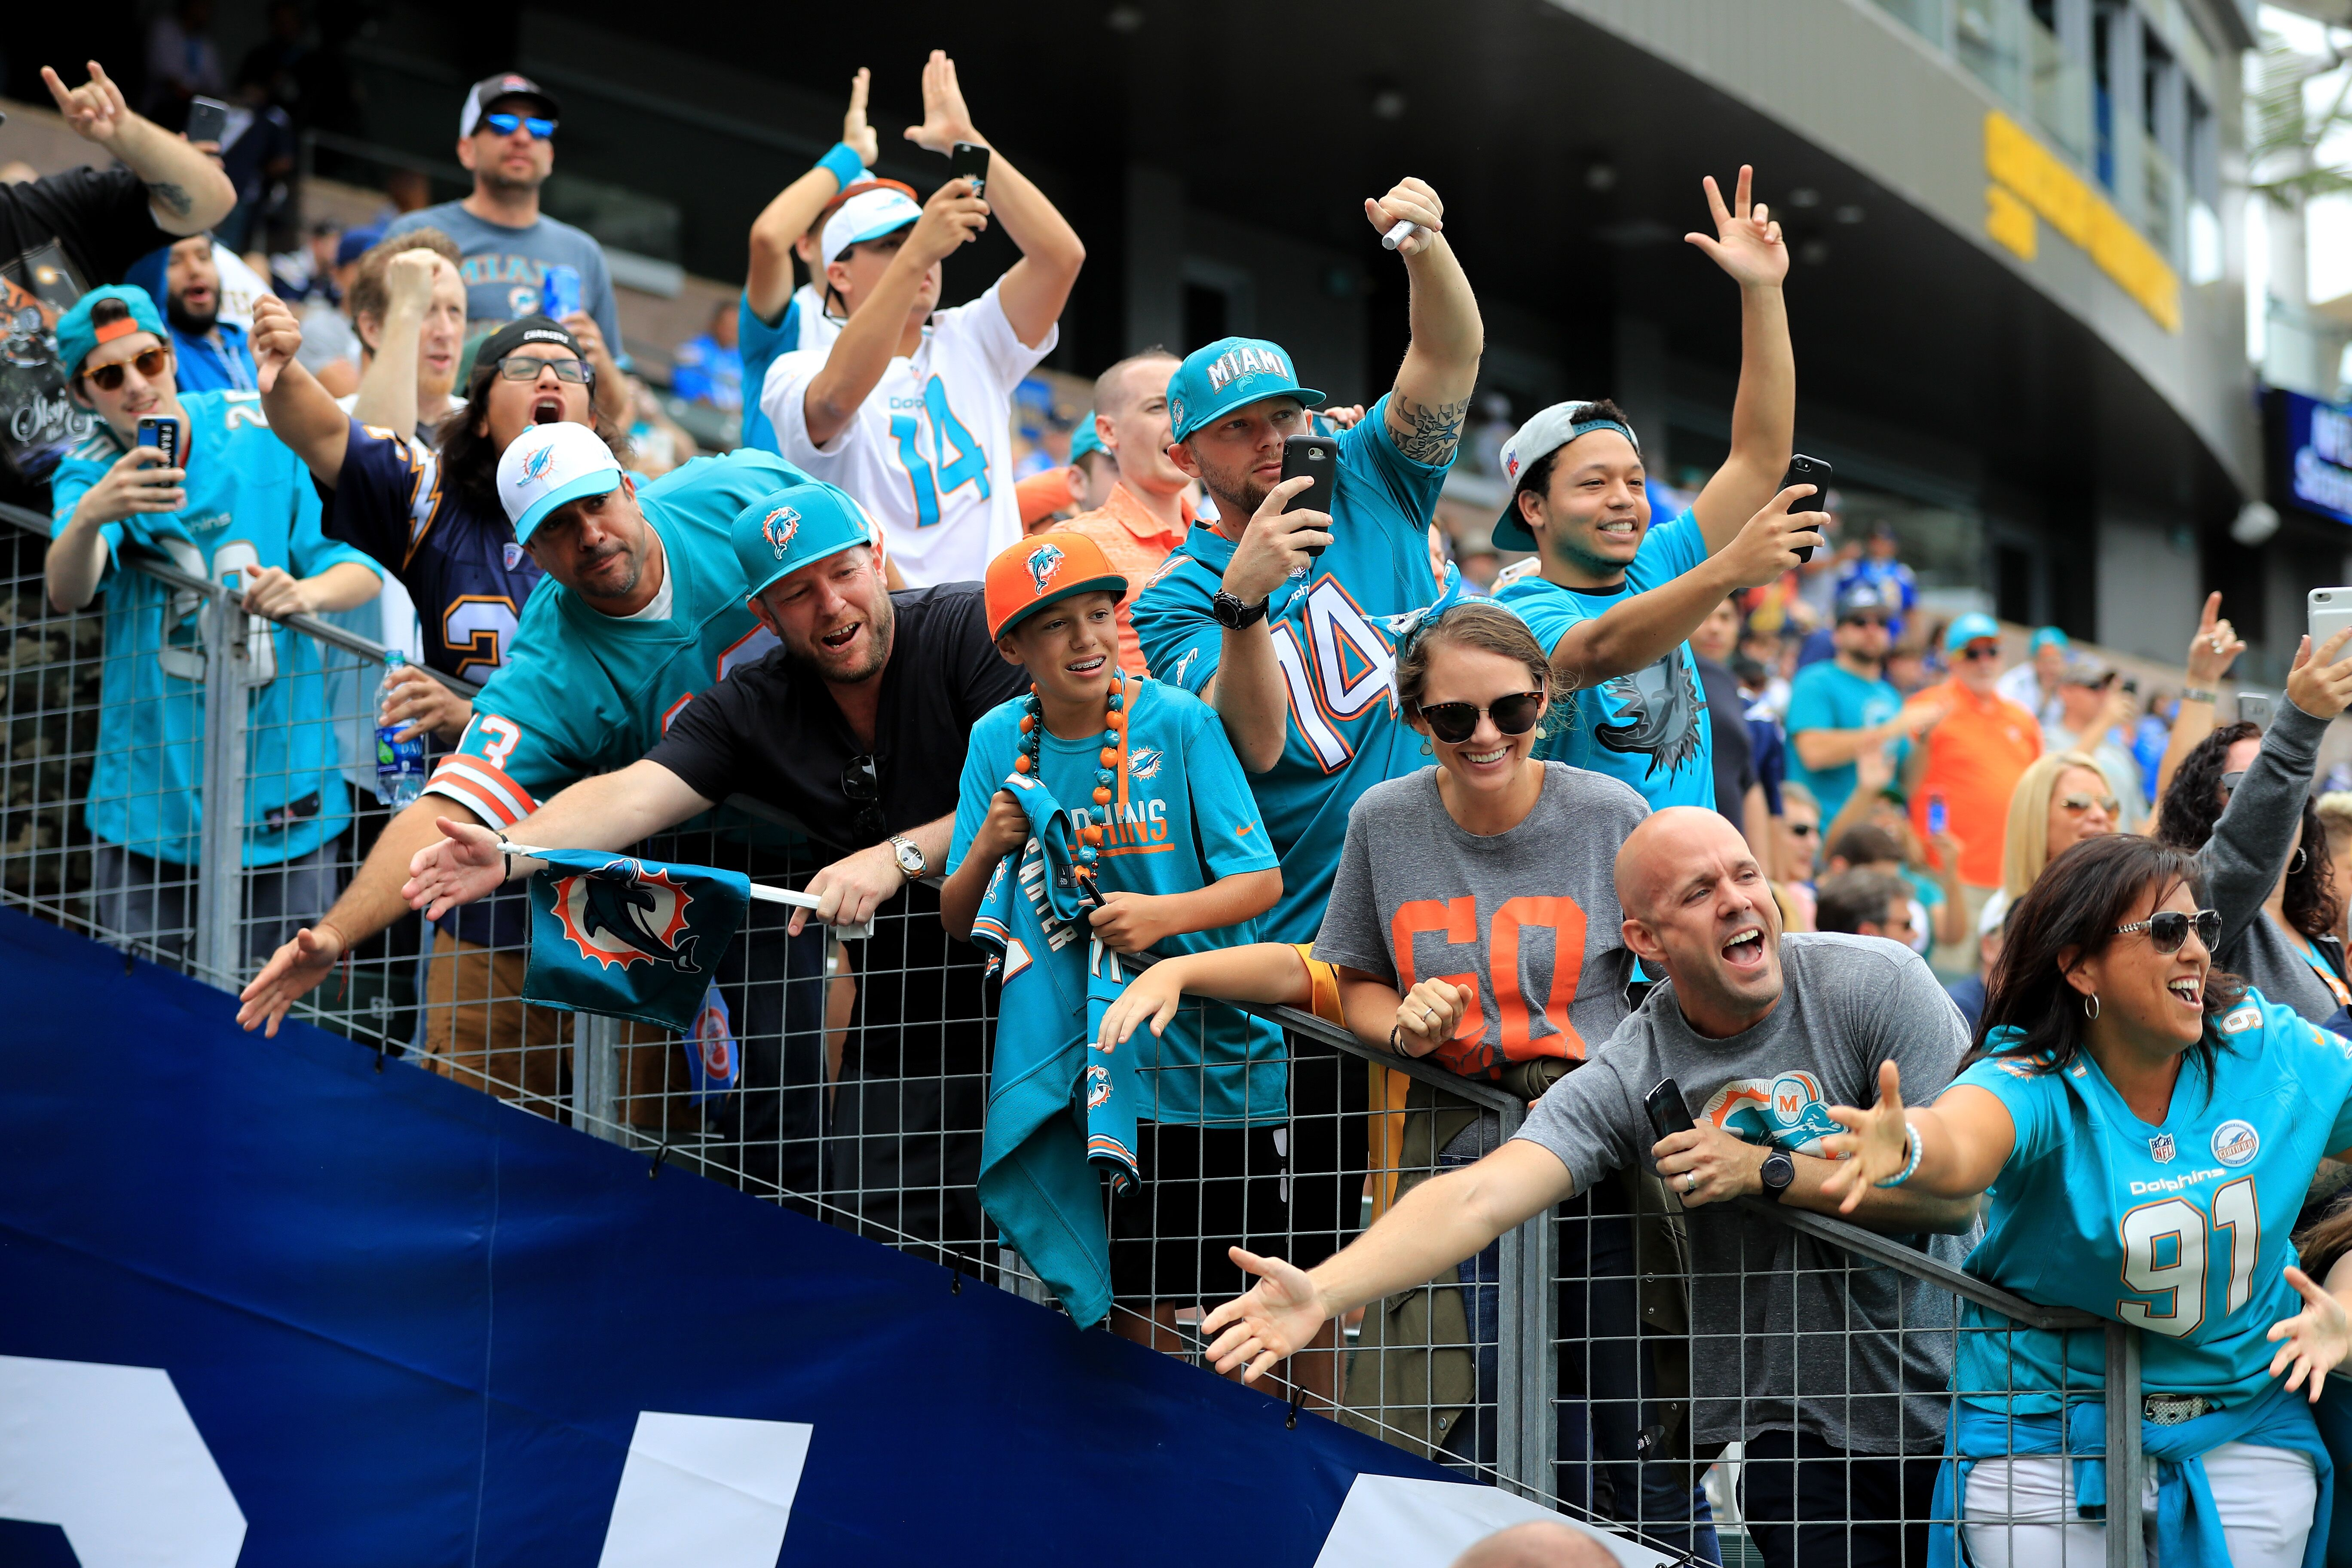 Miami Dolphins ready for pre-season game two against the Buccaneeers